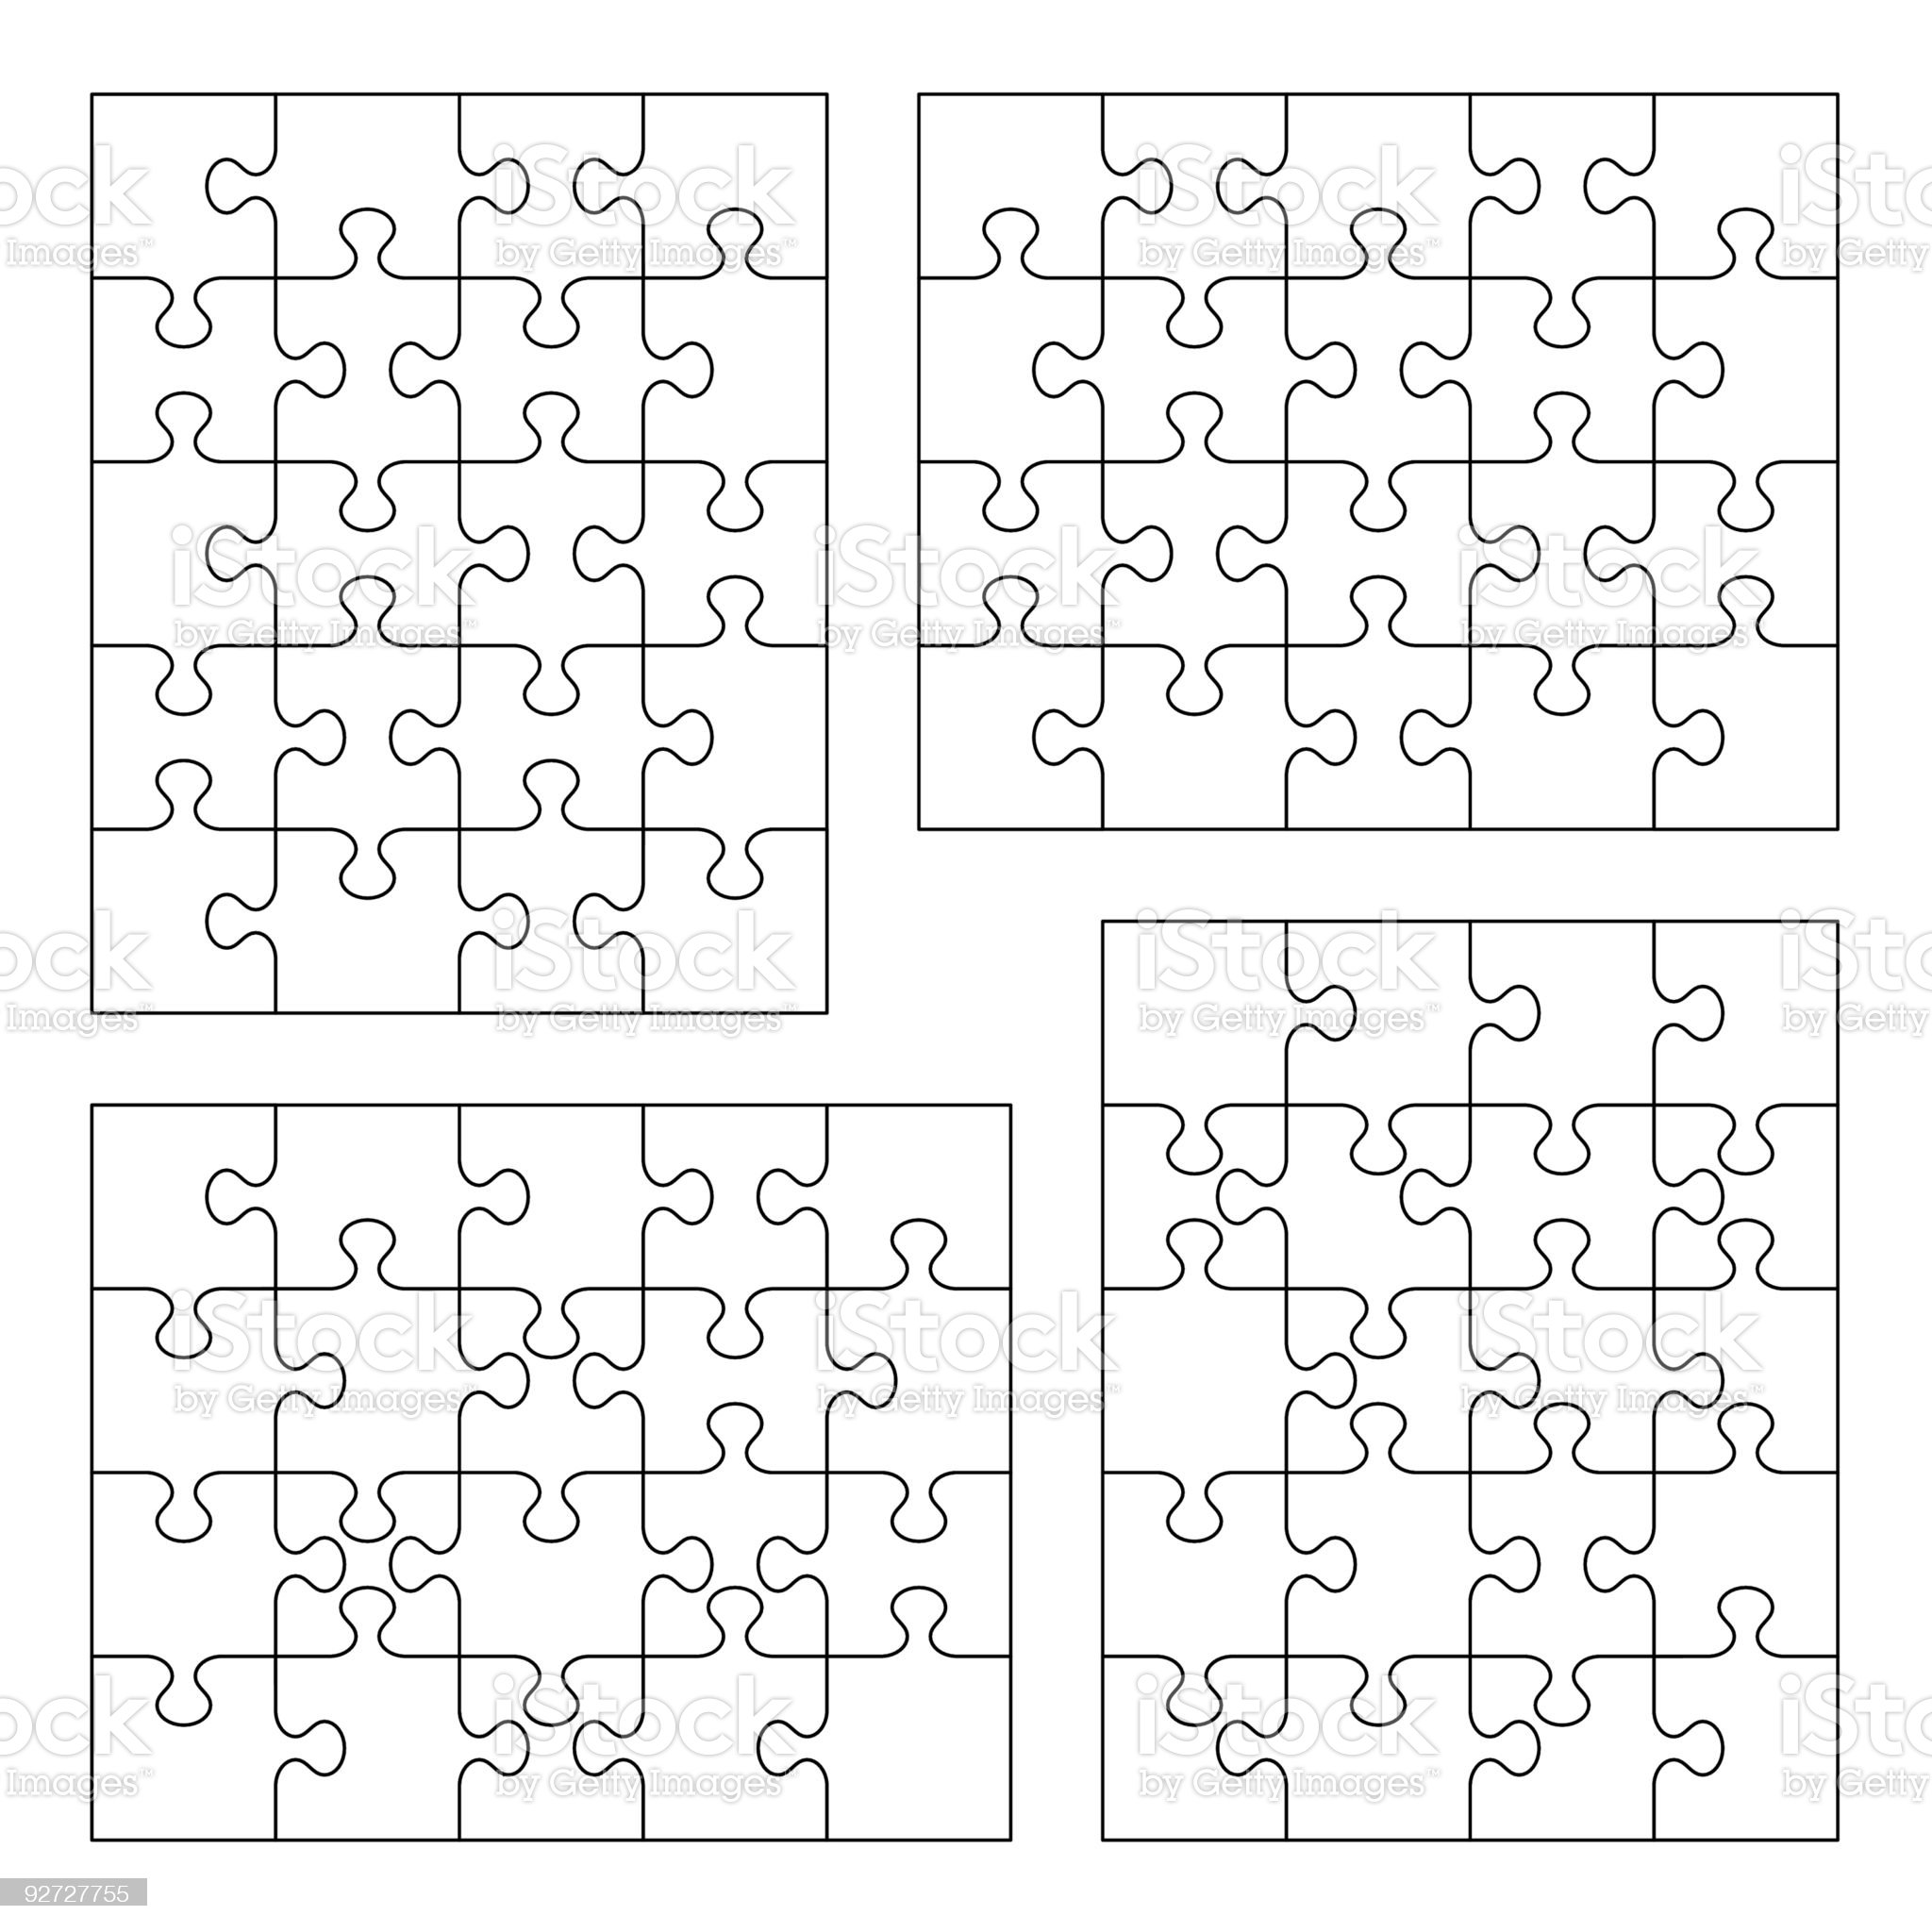 Jigsaw puzzle blank templates royalty-free stock vector art